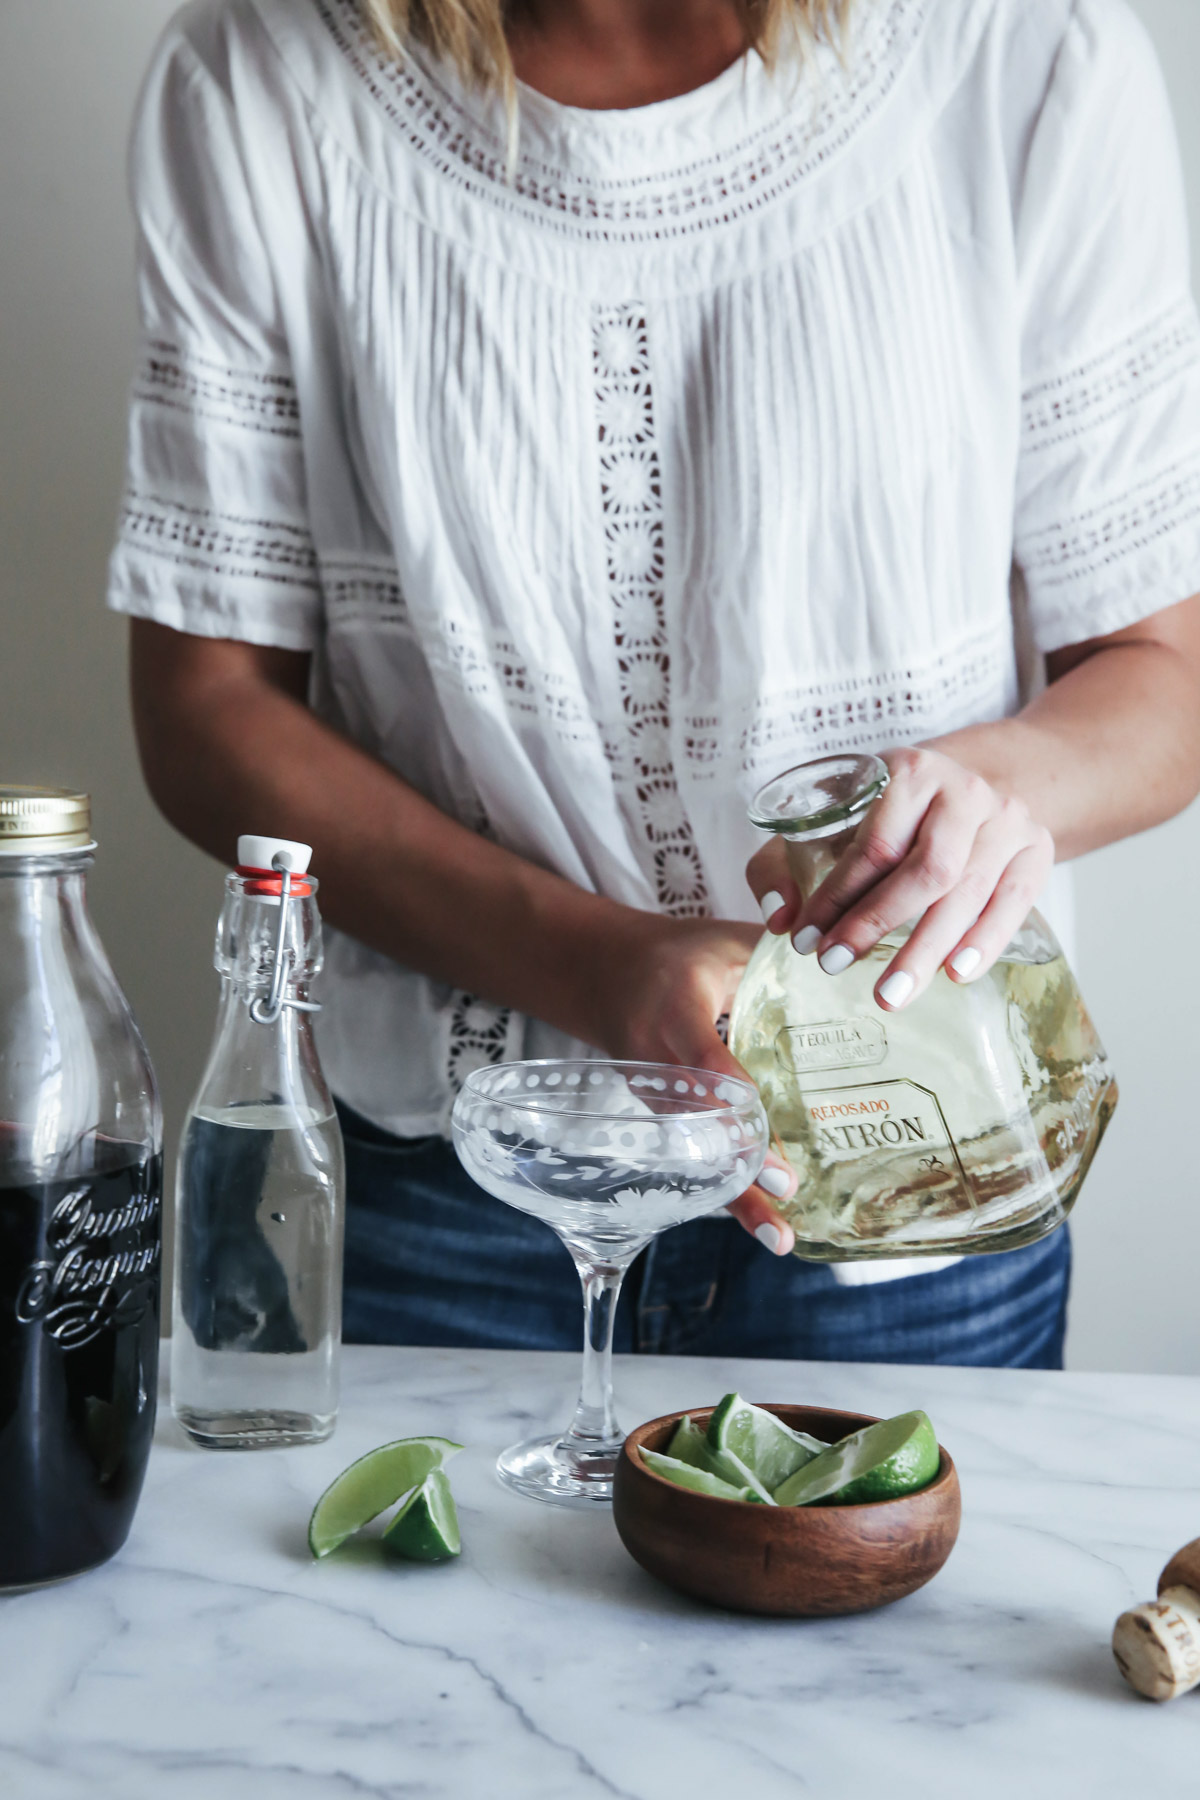 patron margarita recipe